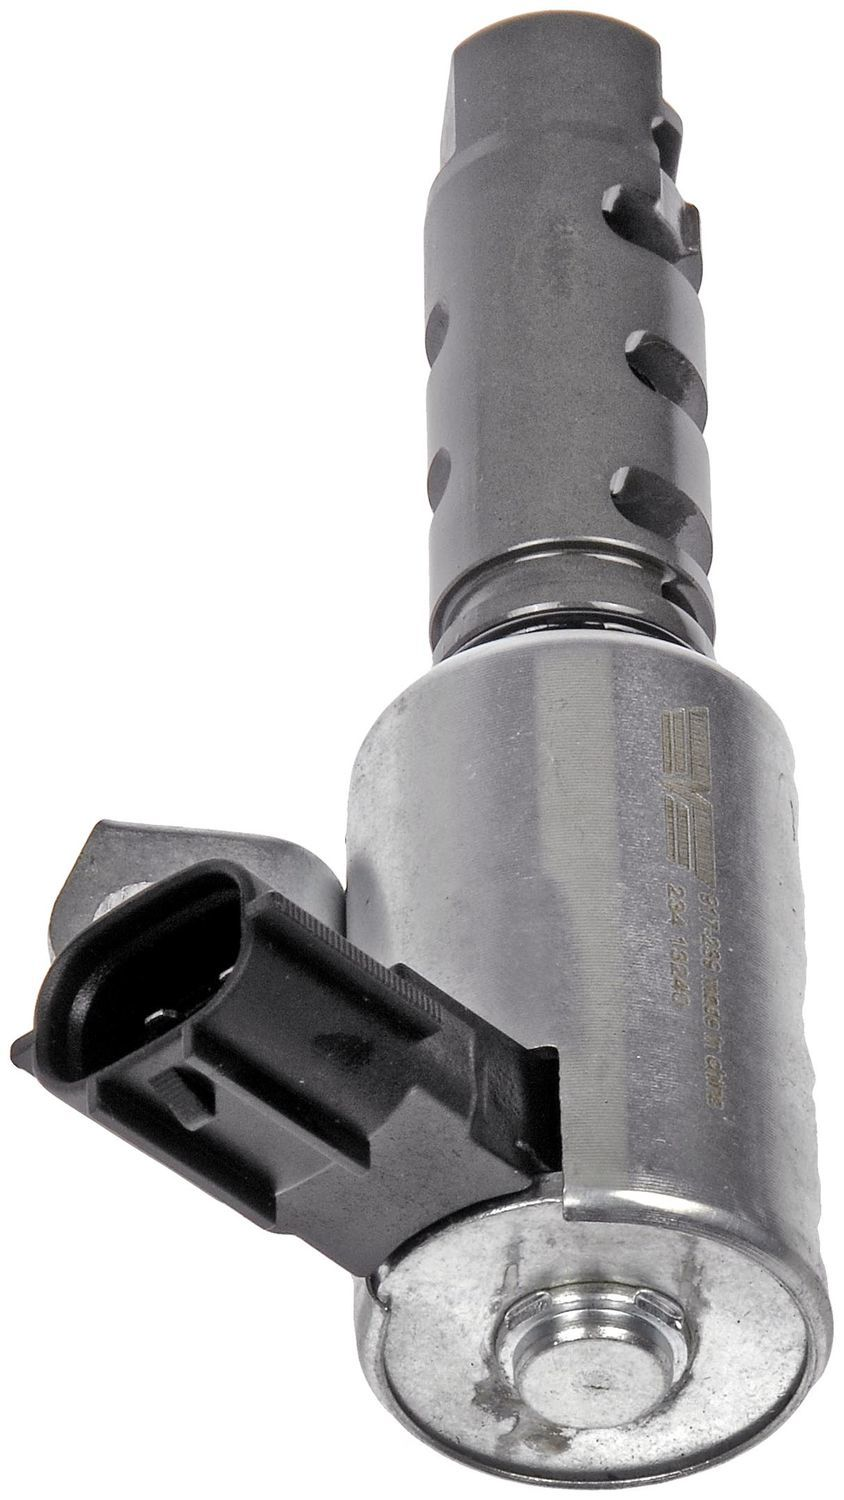 DORMAN OE SOLUTIONS - Engine Variable Timing Solenoid (Left) - DRE 917-239